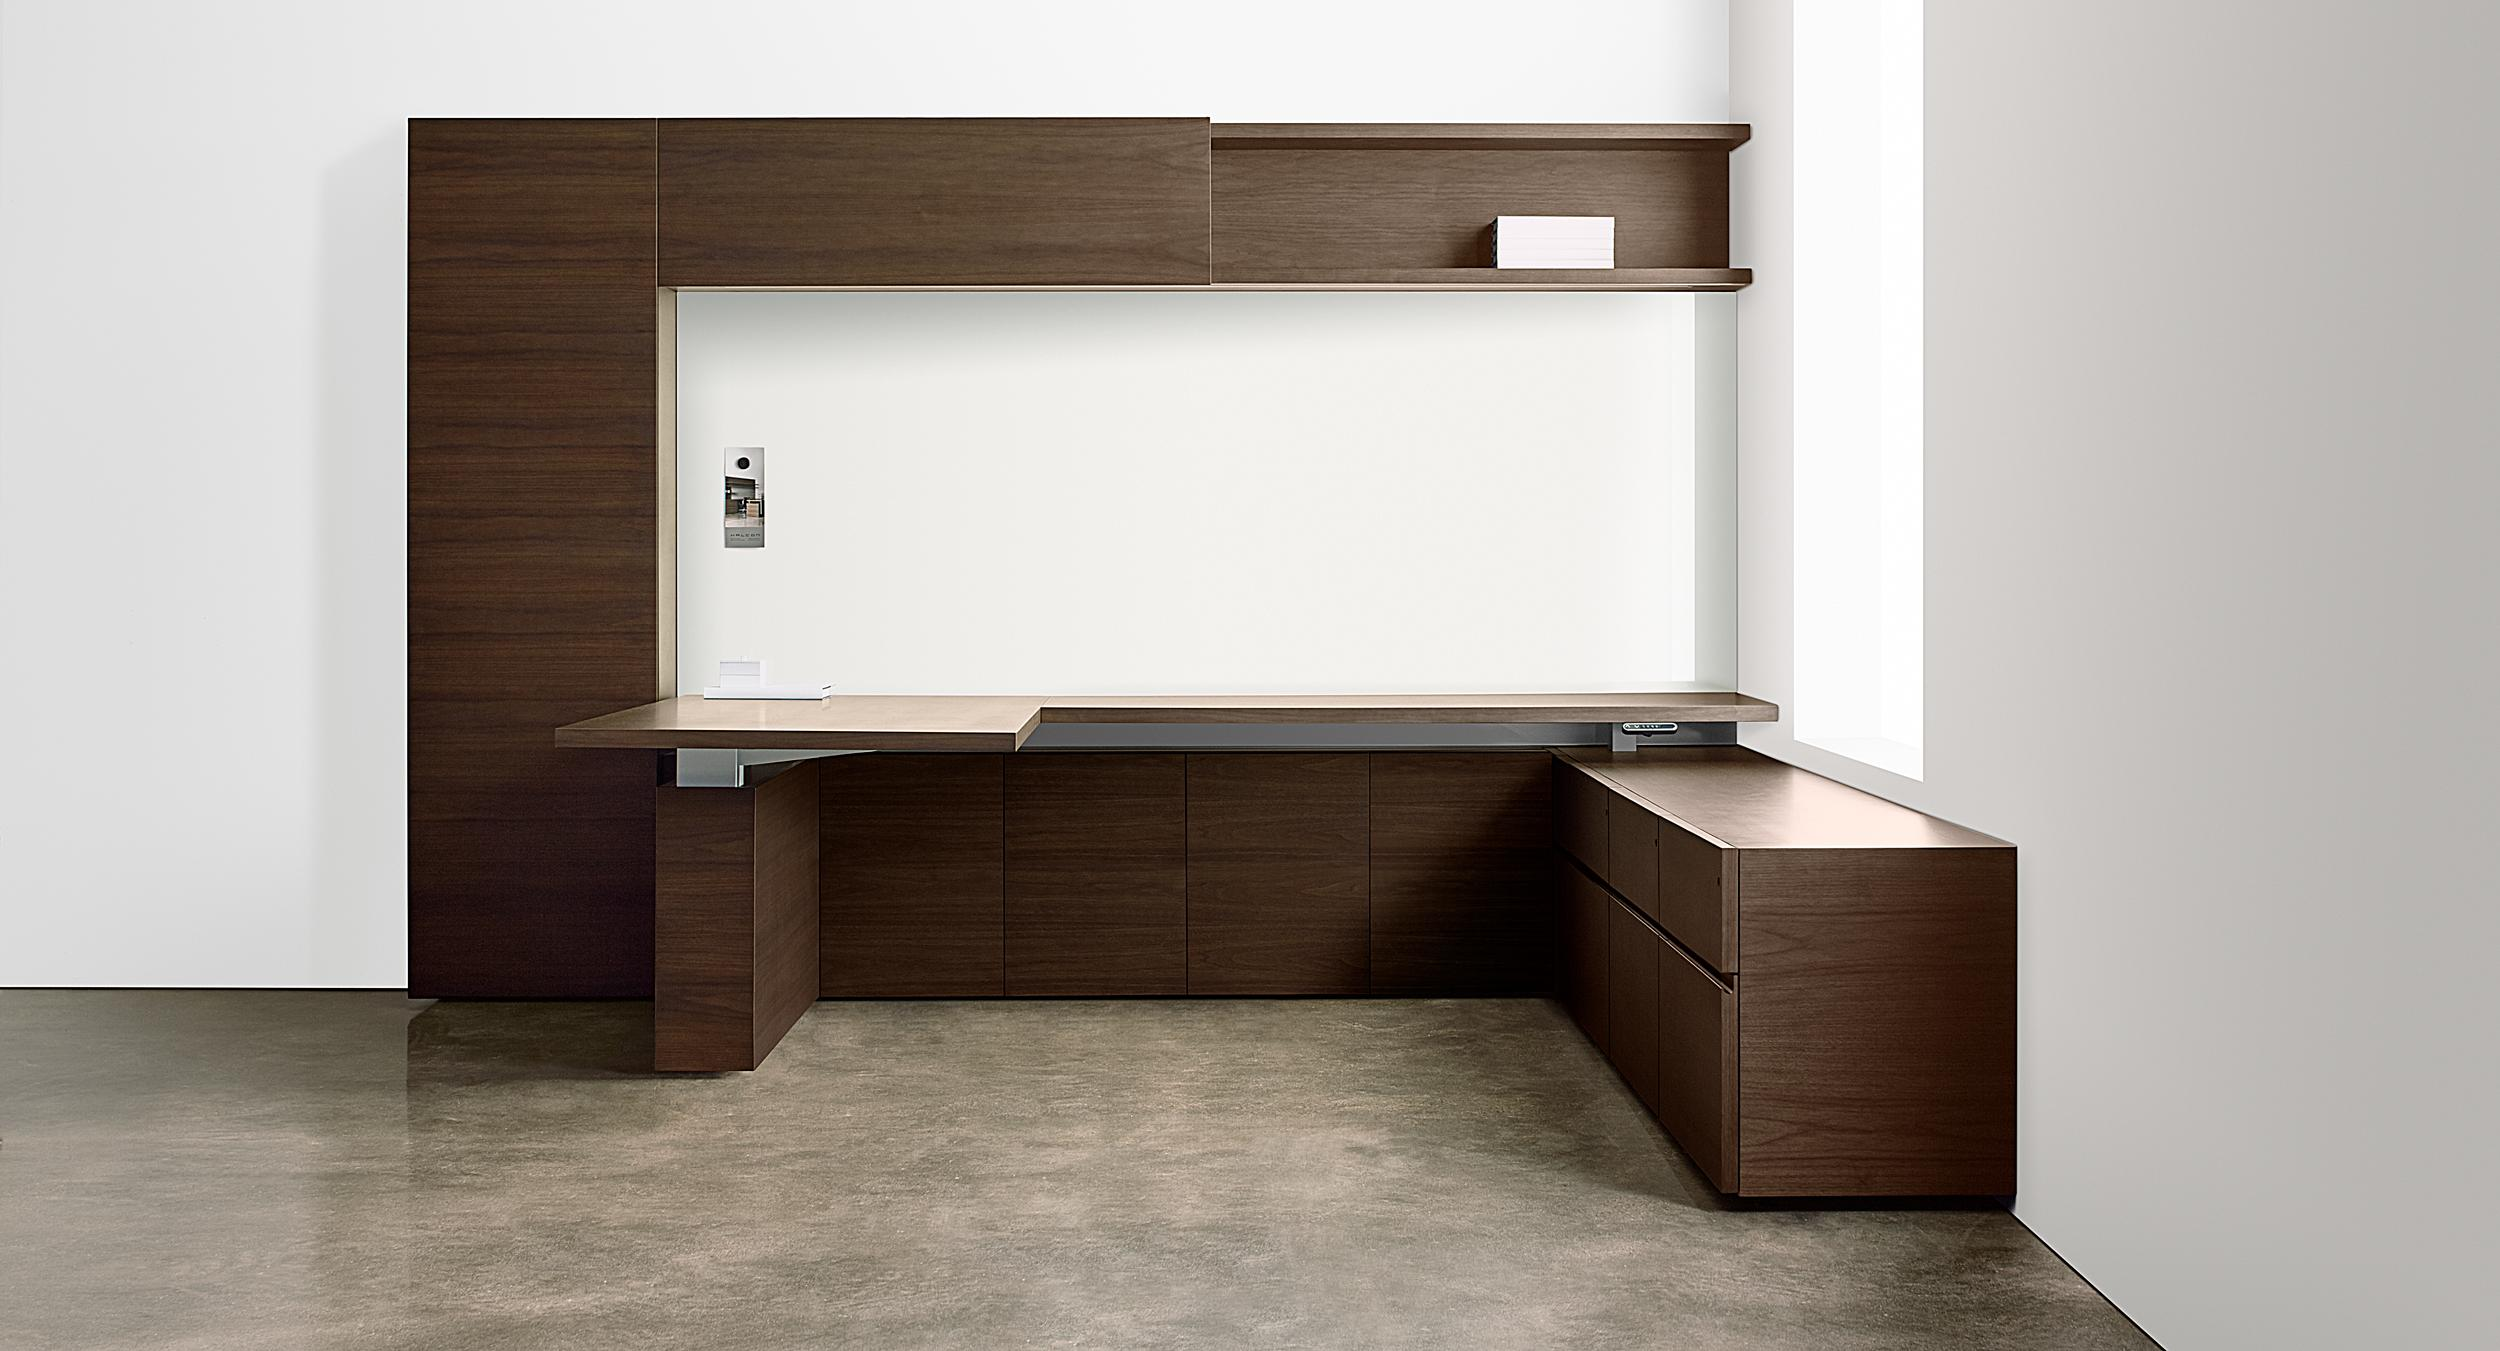 Adjustable-height desking seamlessly integrates into the timeless modern design.